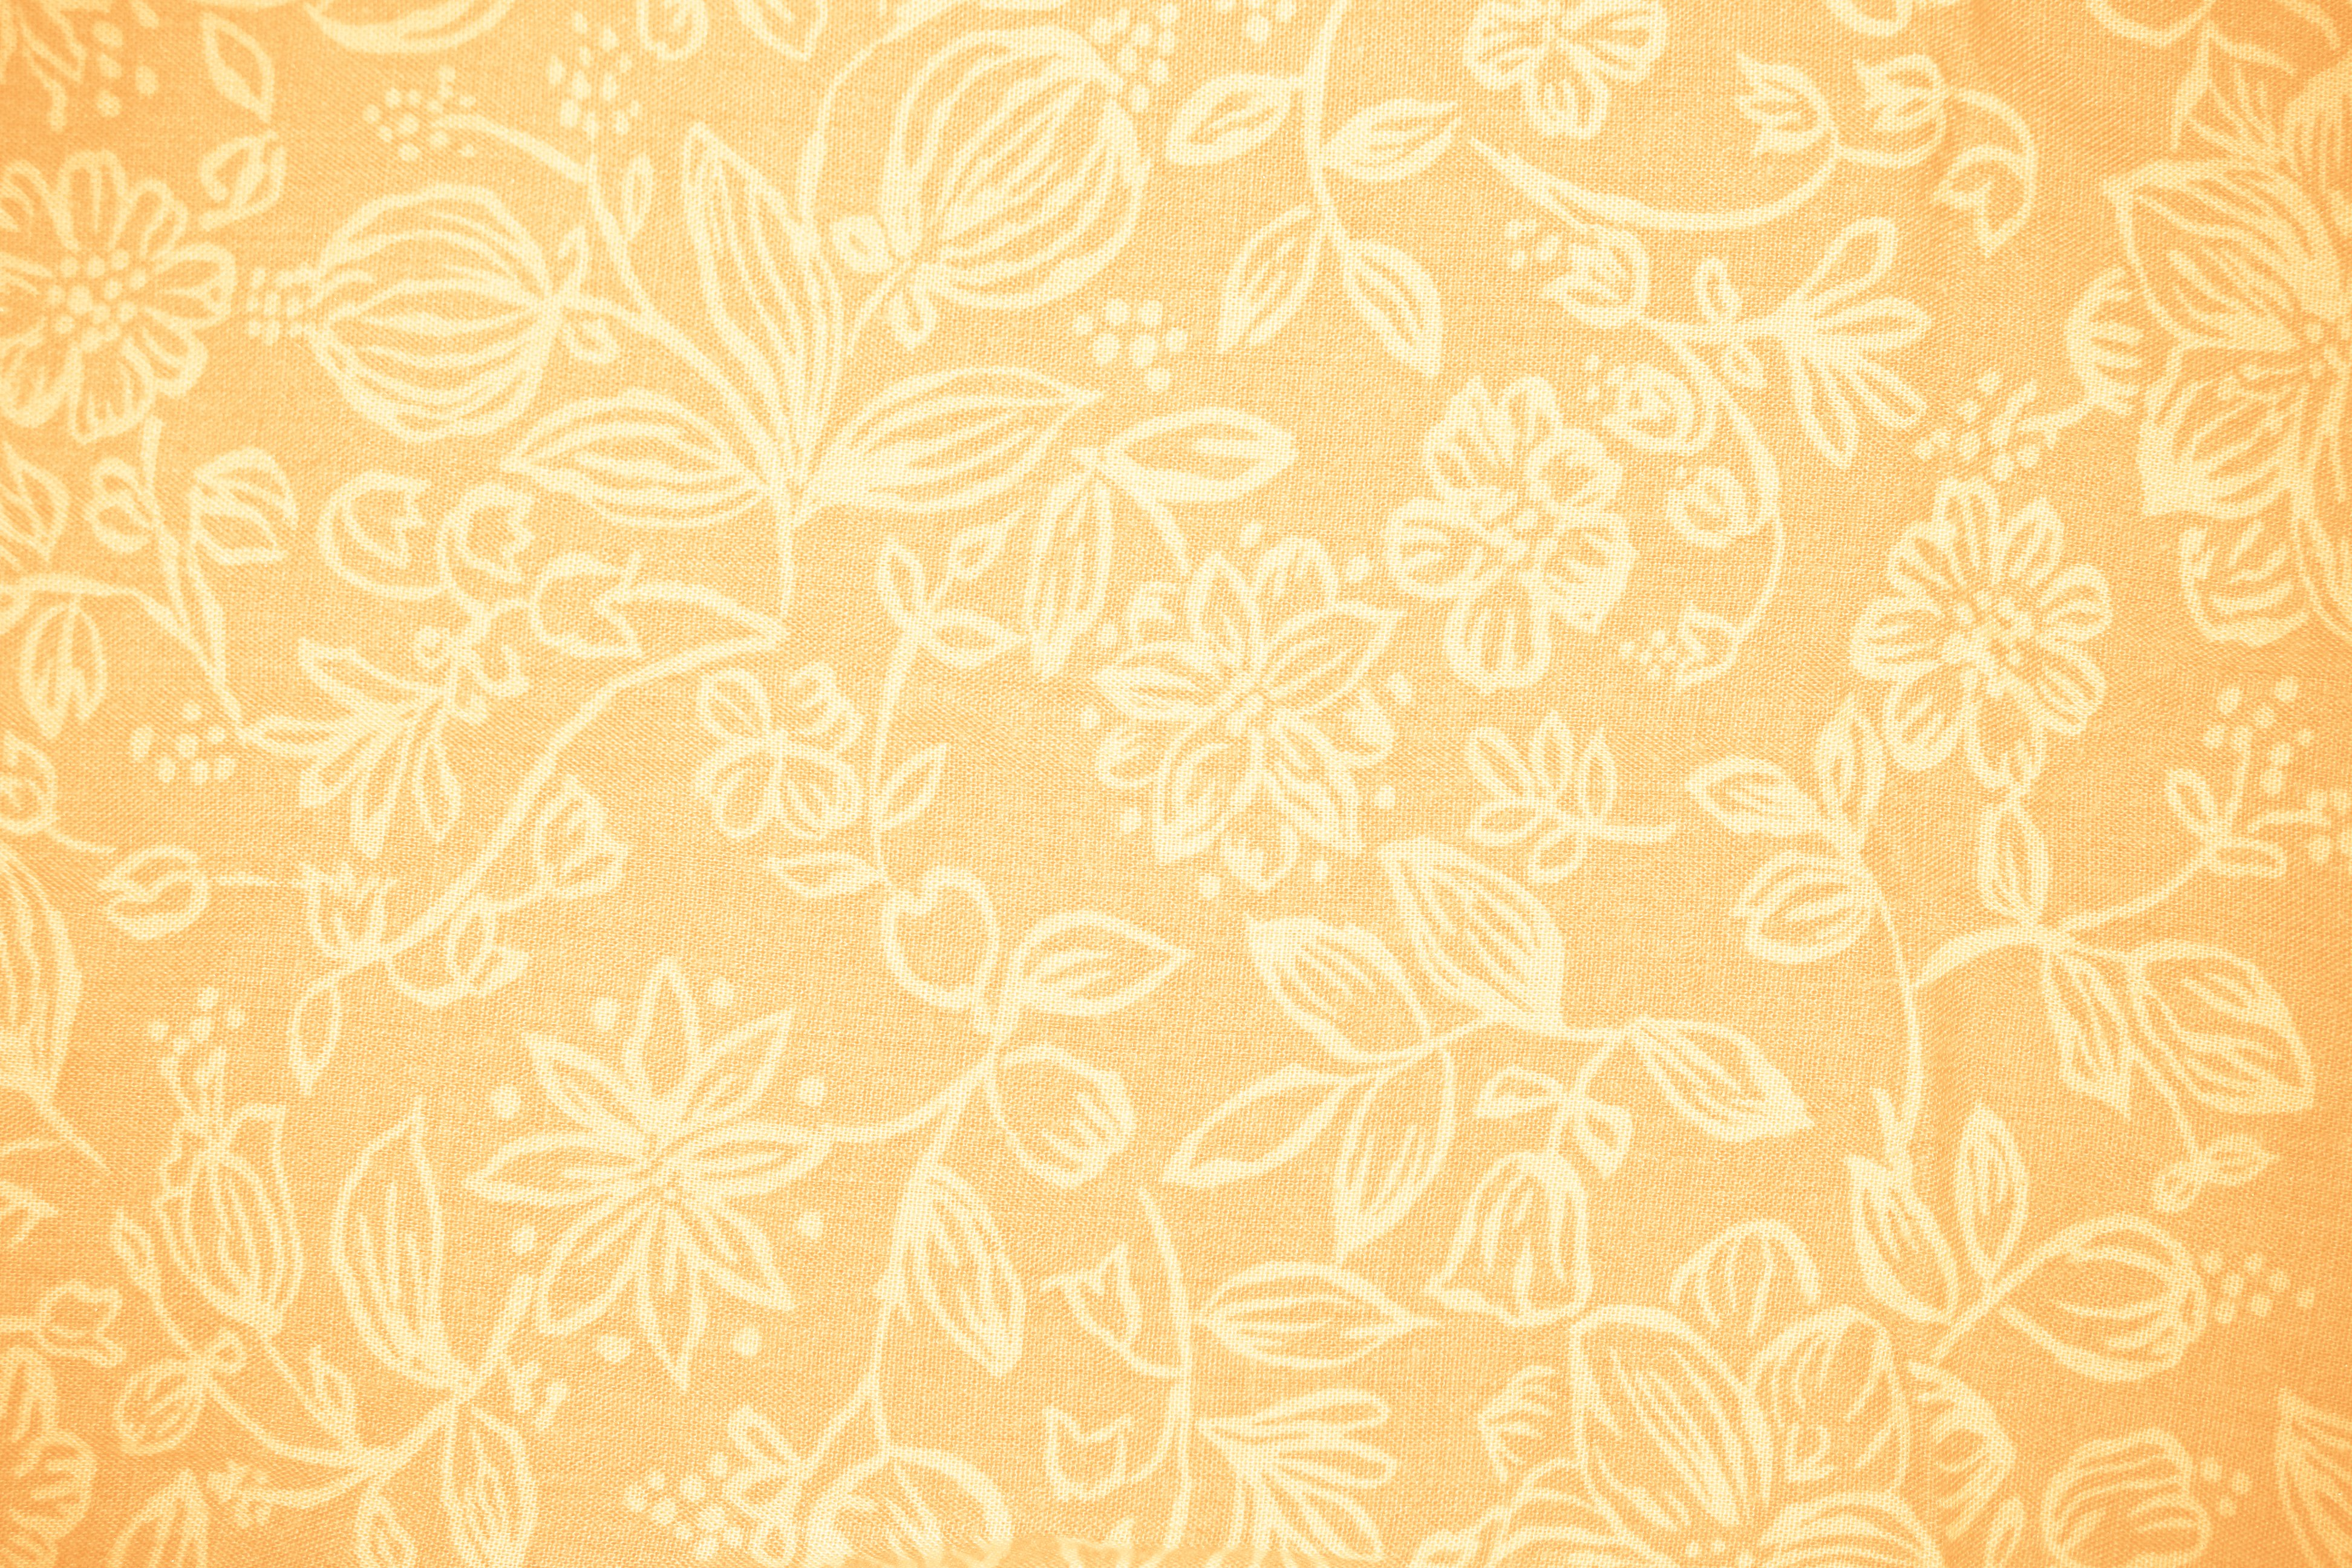 Peach Colored Fabric With Floral Pattern Texture Picture Free